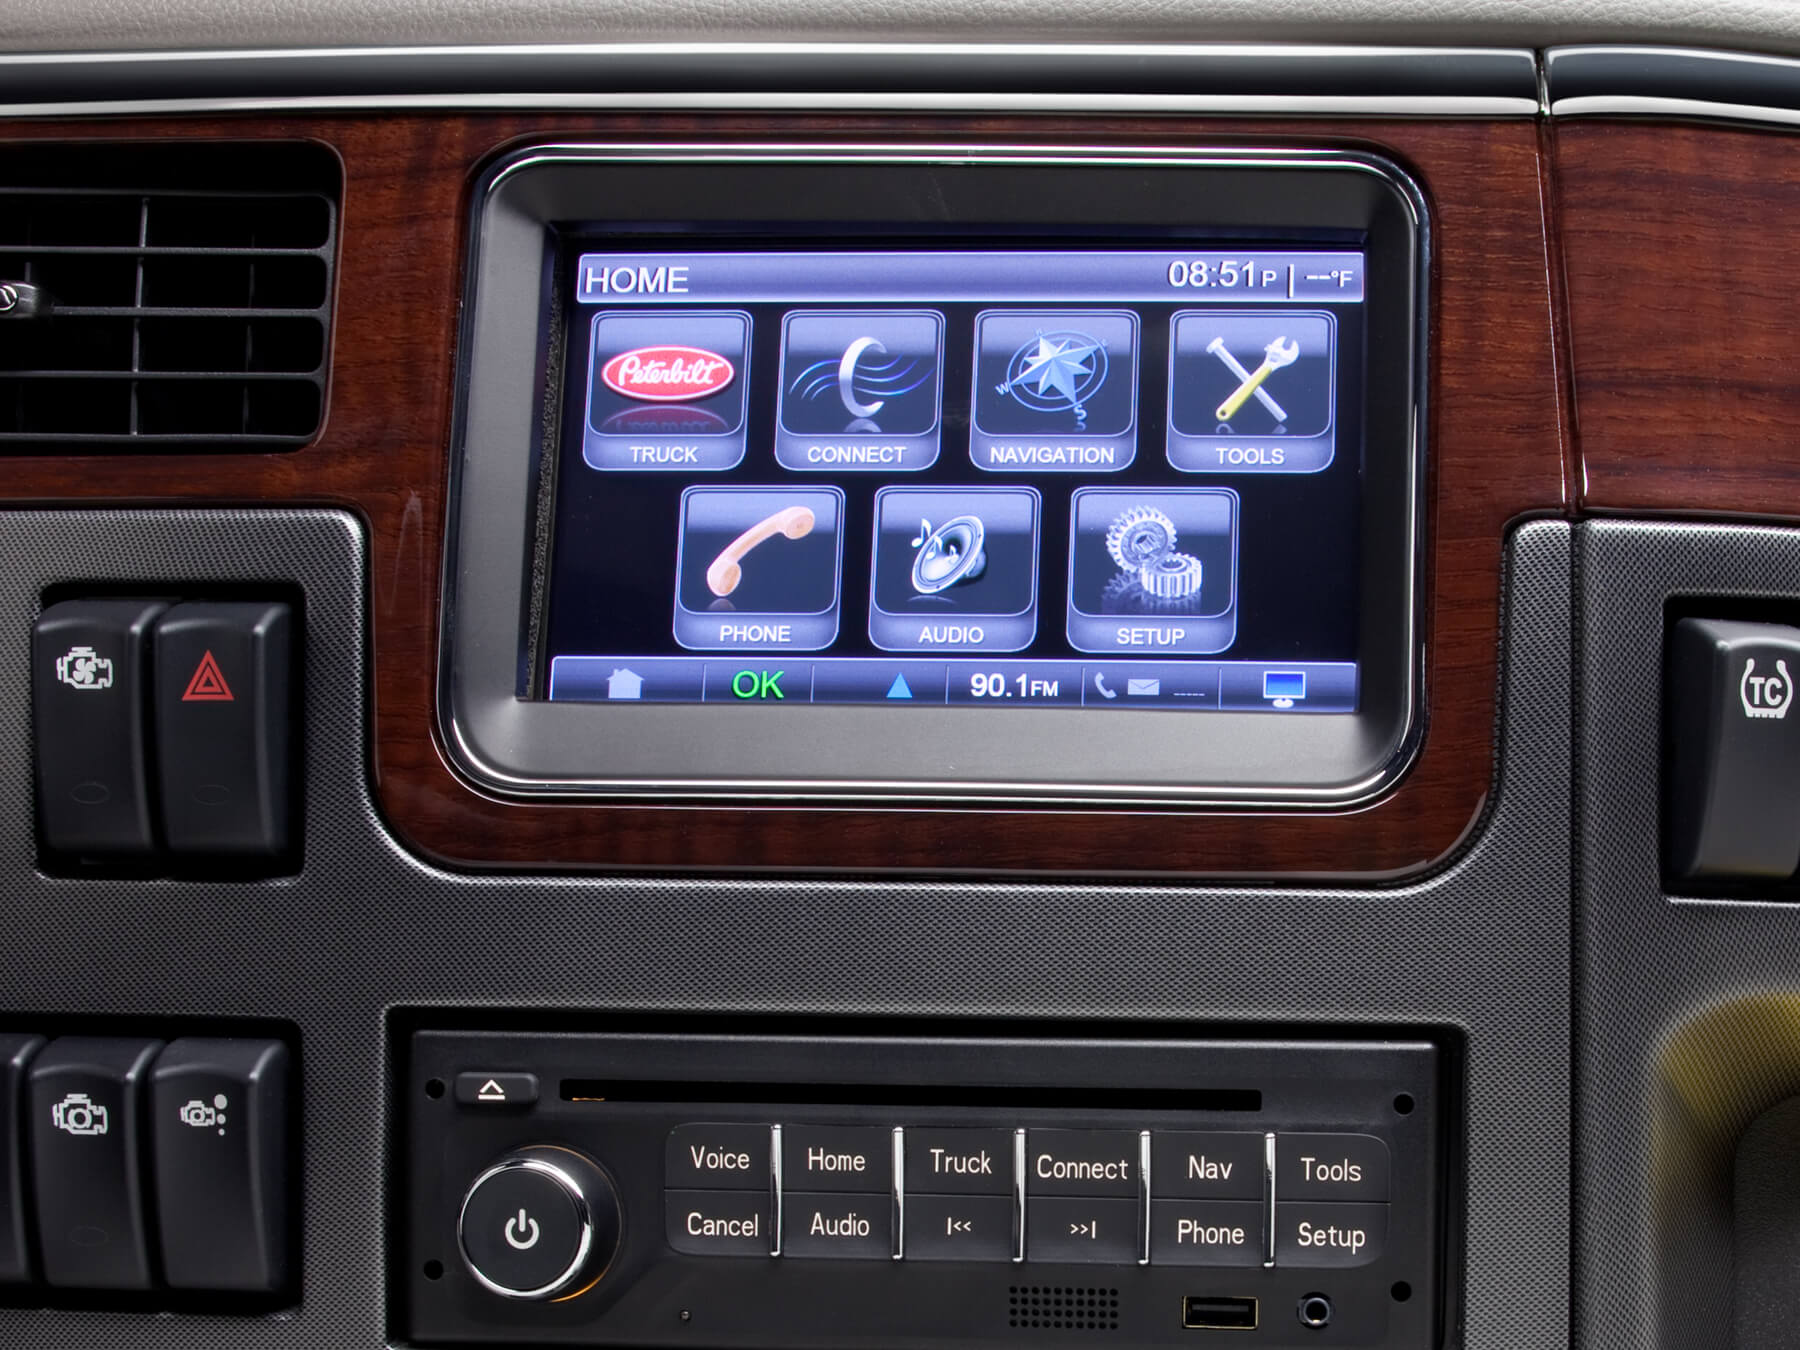 state of the art eld compliant equipment available for drivers